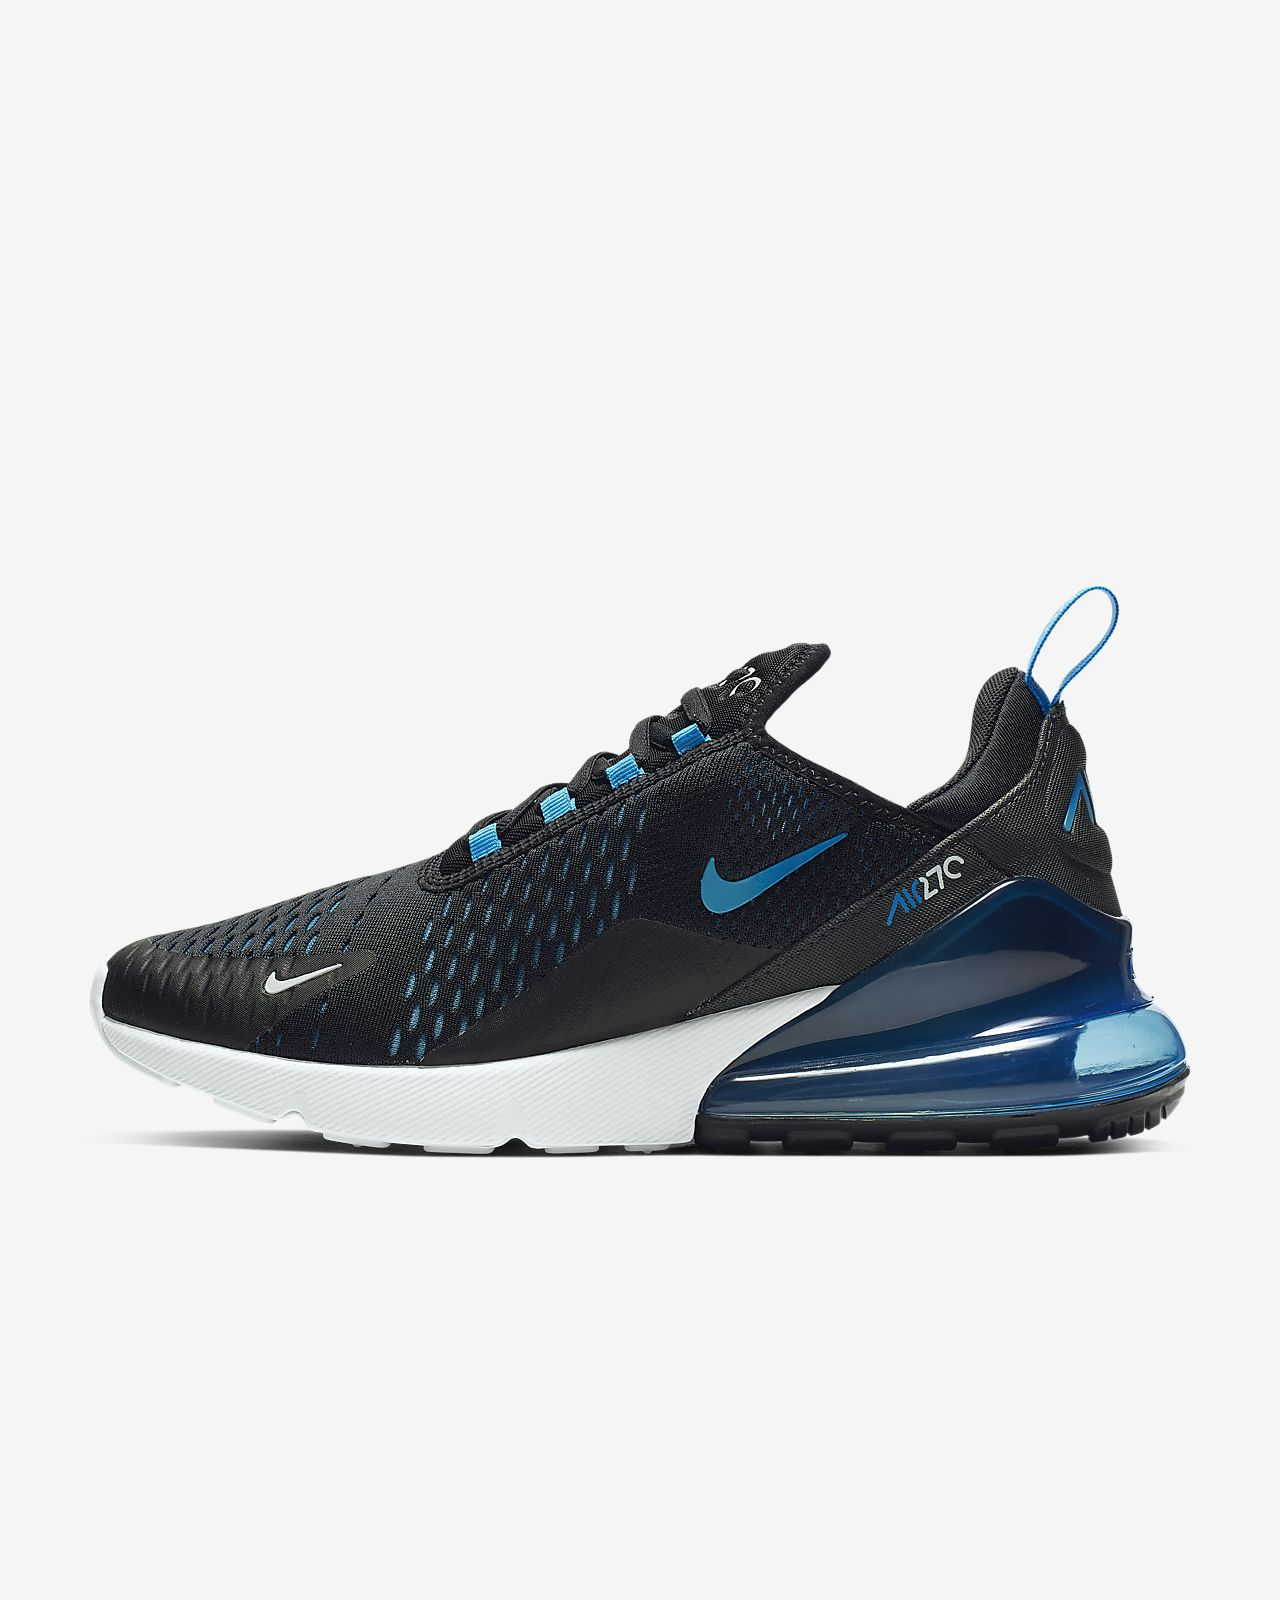 new concept 69cb0 d6fd0 ... Nike Air Max 270 Herrenschuh